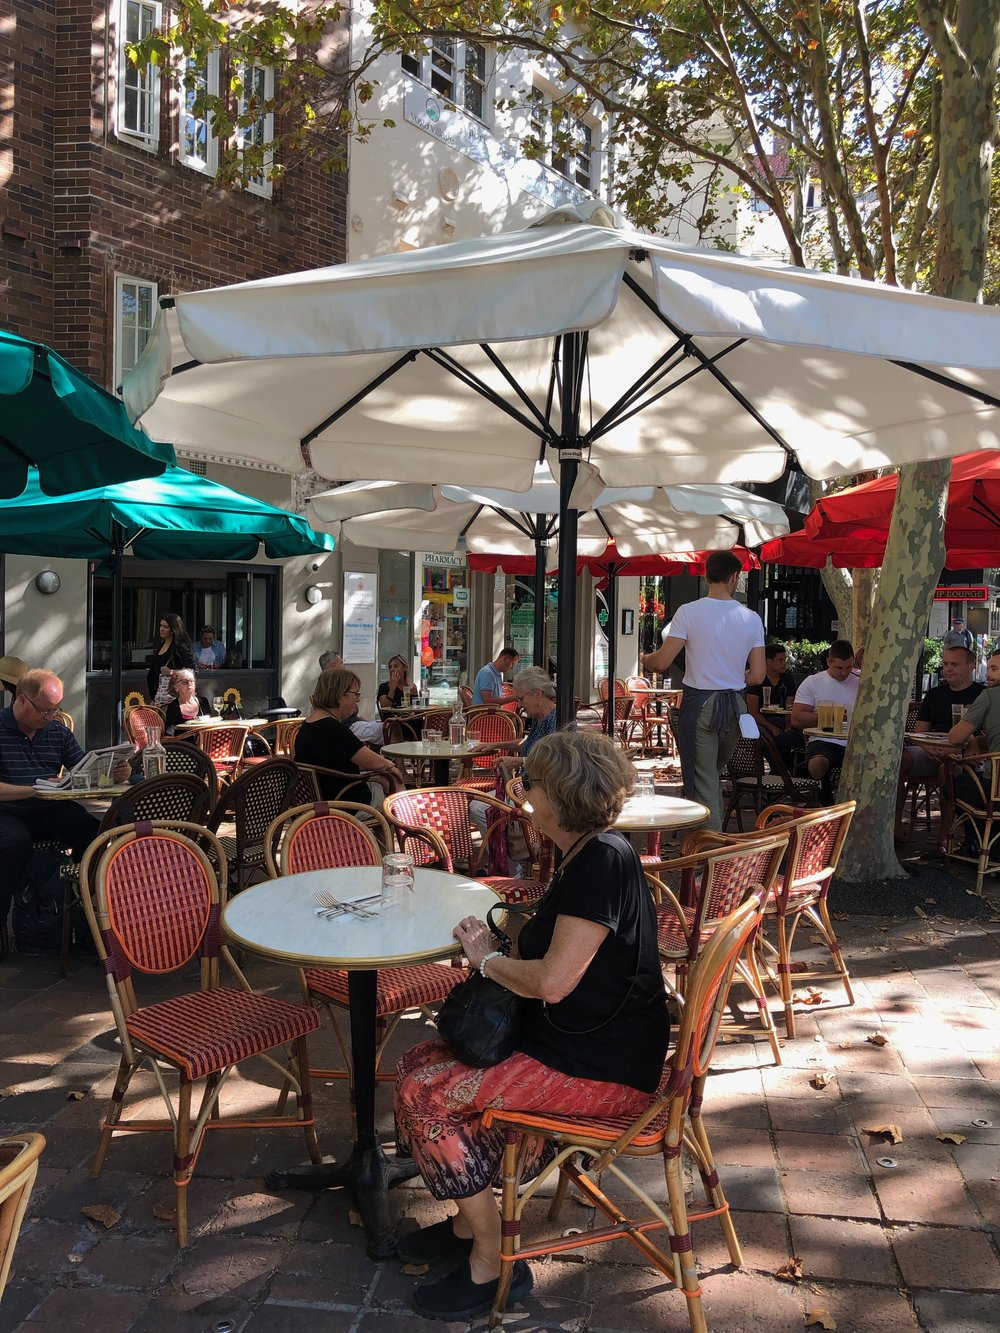 Shady, outdoor cafes all over Sydney